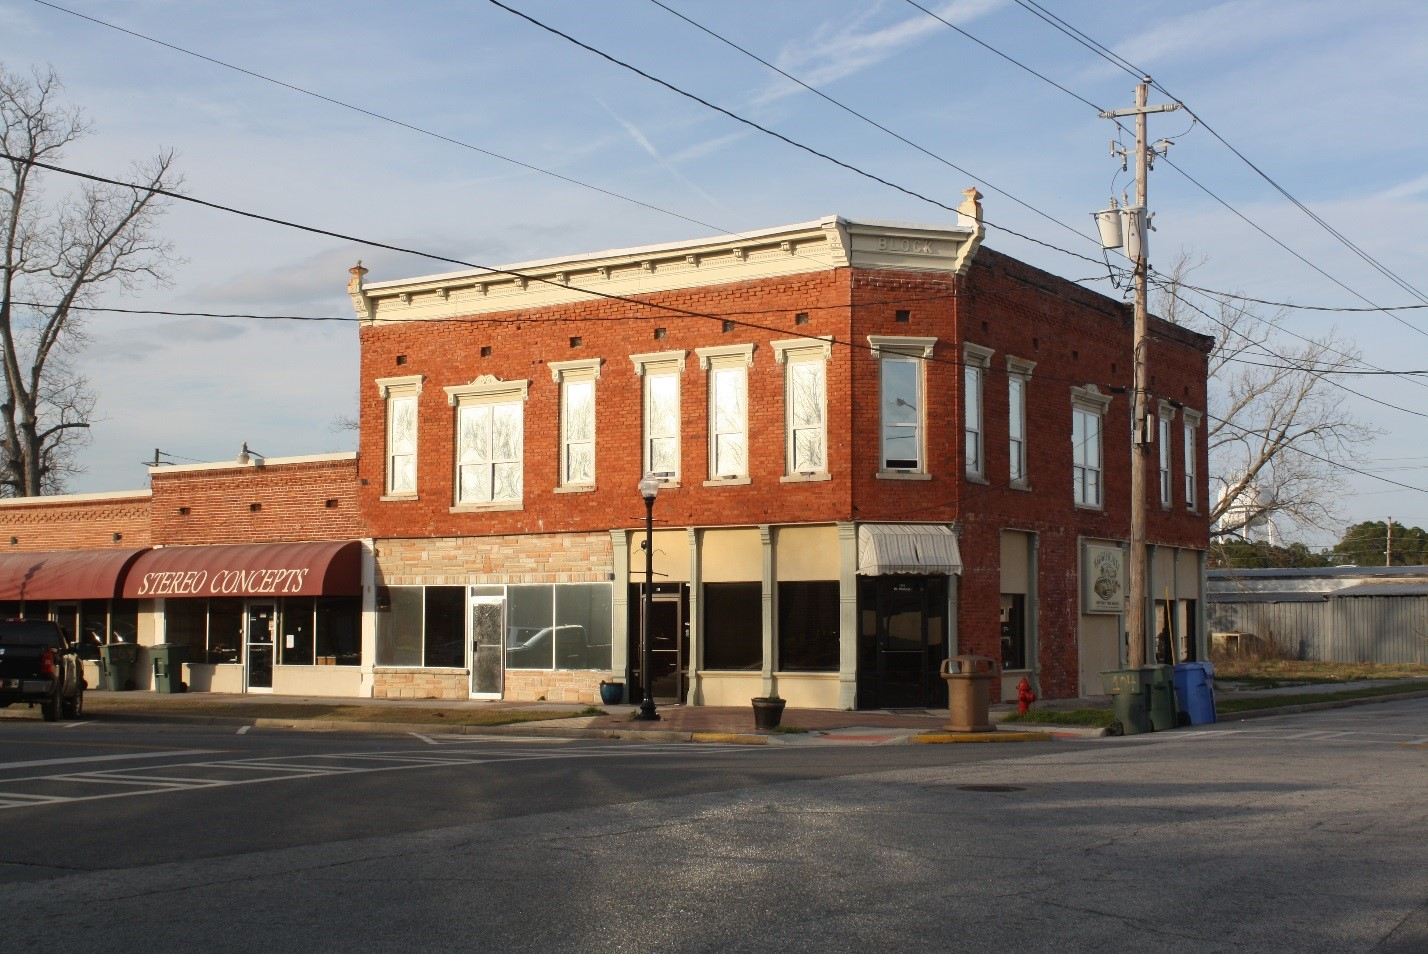 The Tuten Block Building housed the Cohen Mercantile Store that was owned by Jesup Mayor S. E. Cohen and the Jesup Cigar Company owned by Jesup Businessman Harry W. Whaley.